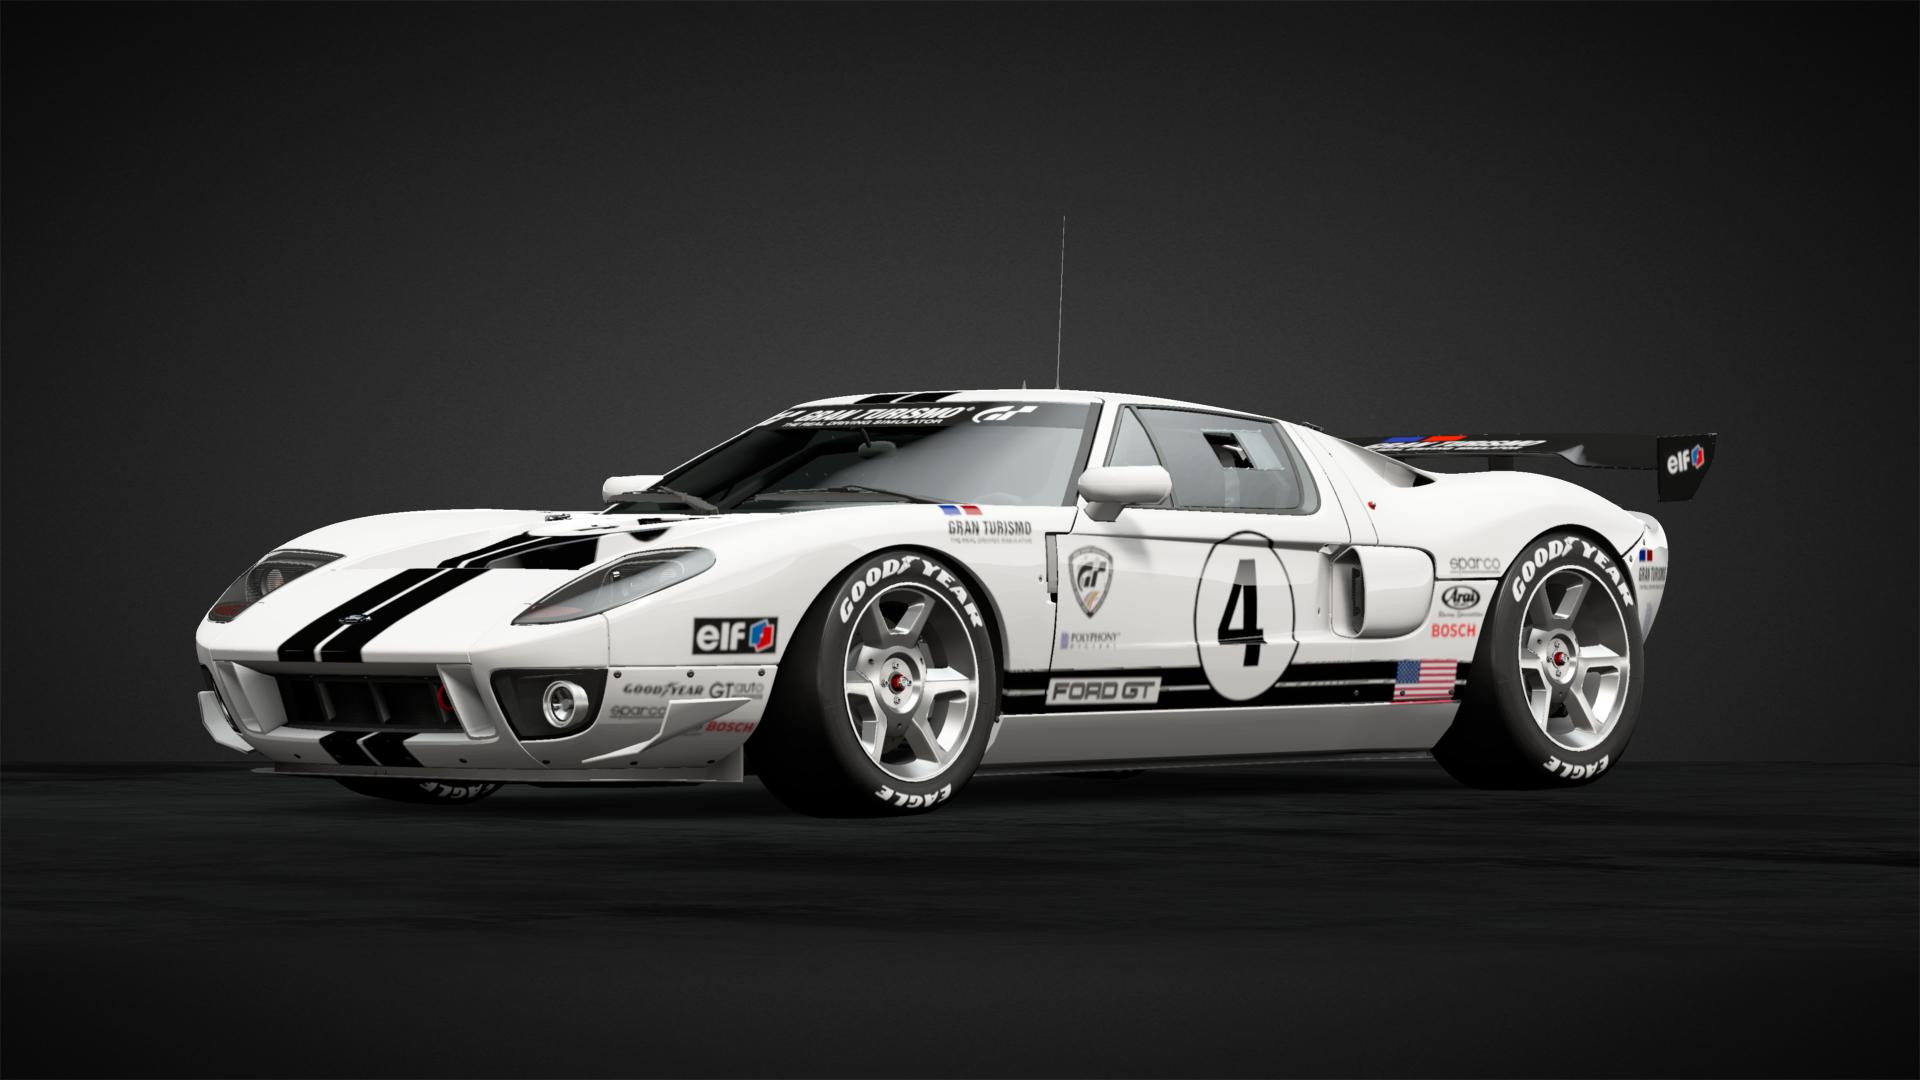 Ford Gt Lm Spec Ii Car Livery By Lewis R Community Gran Turismo Sport